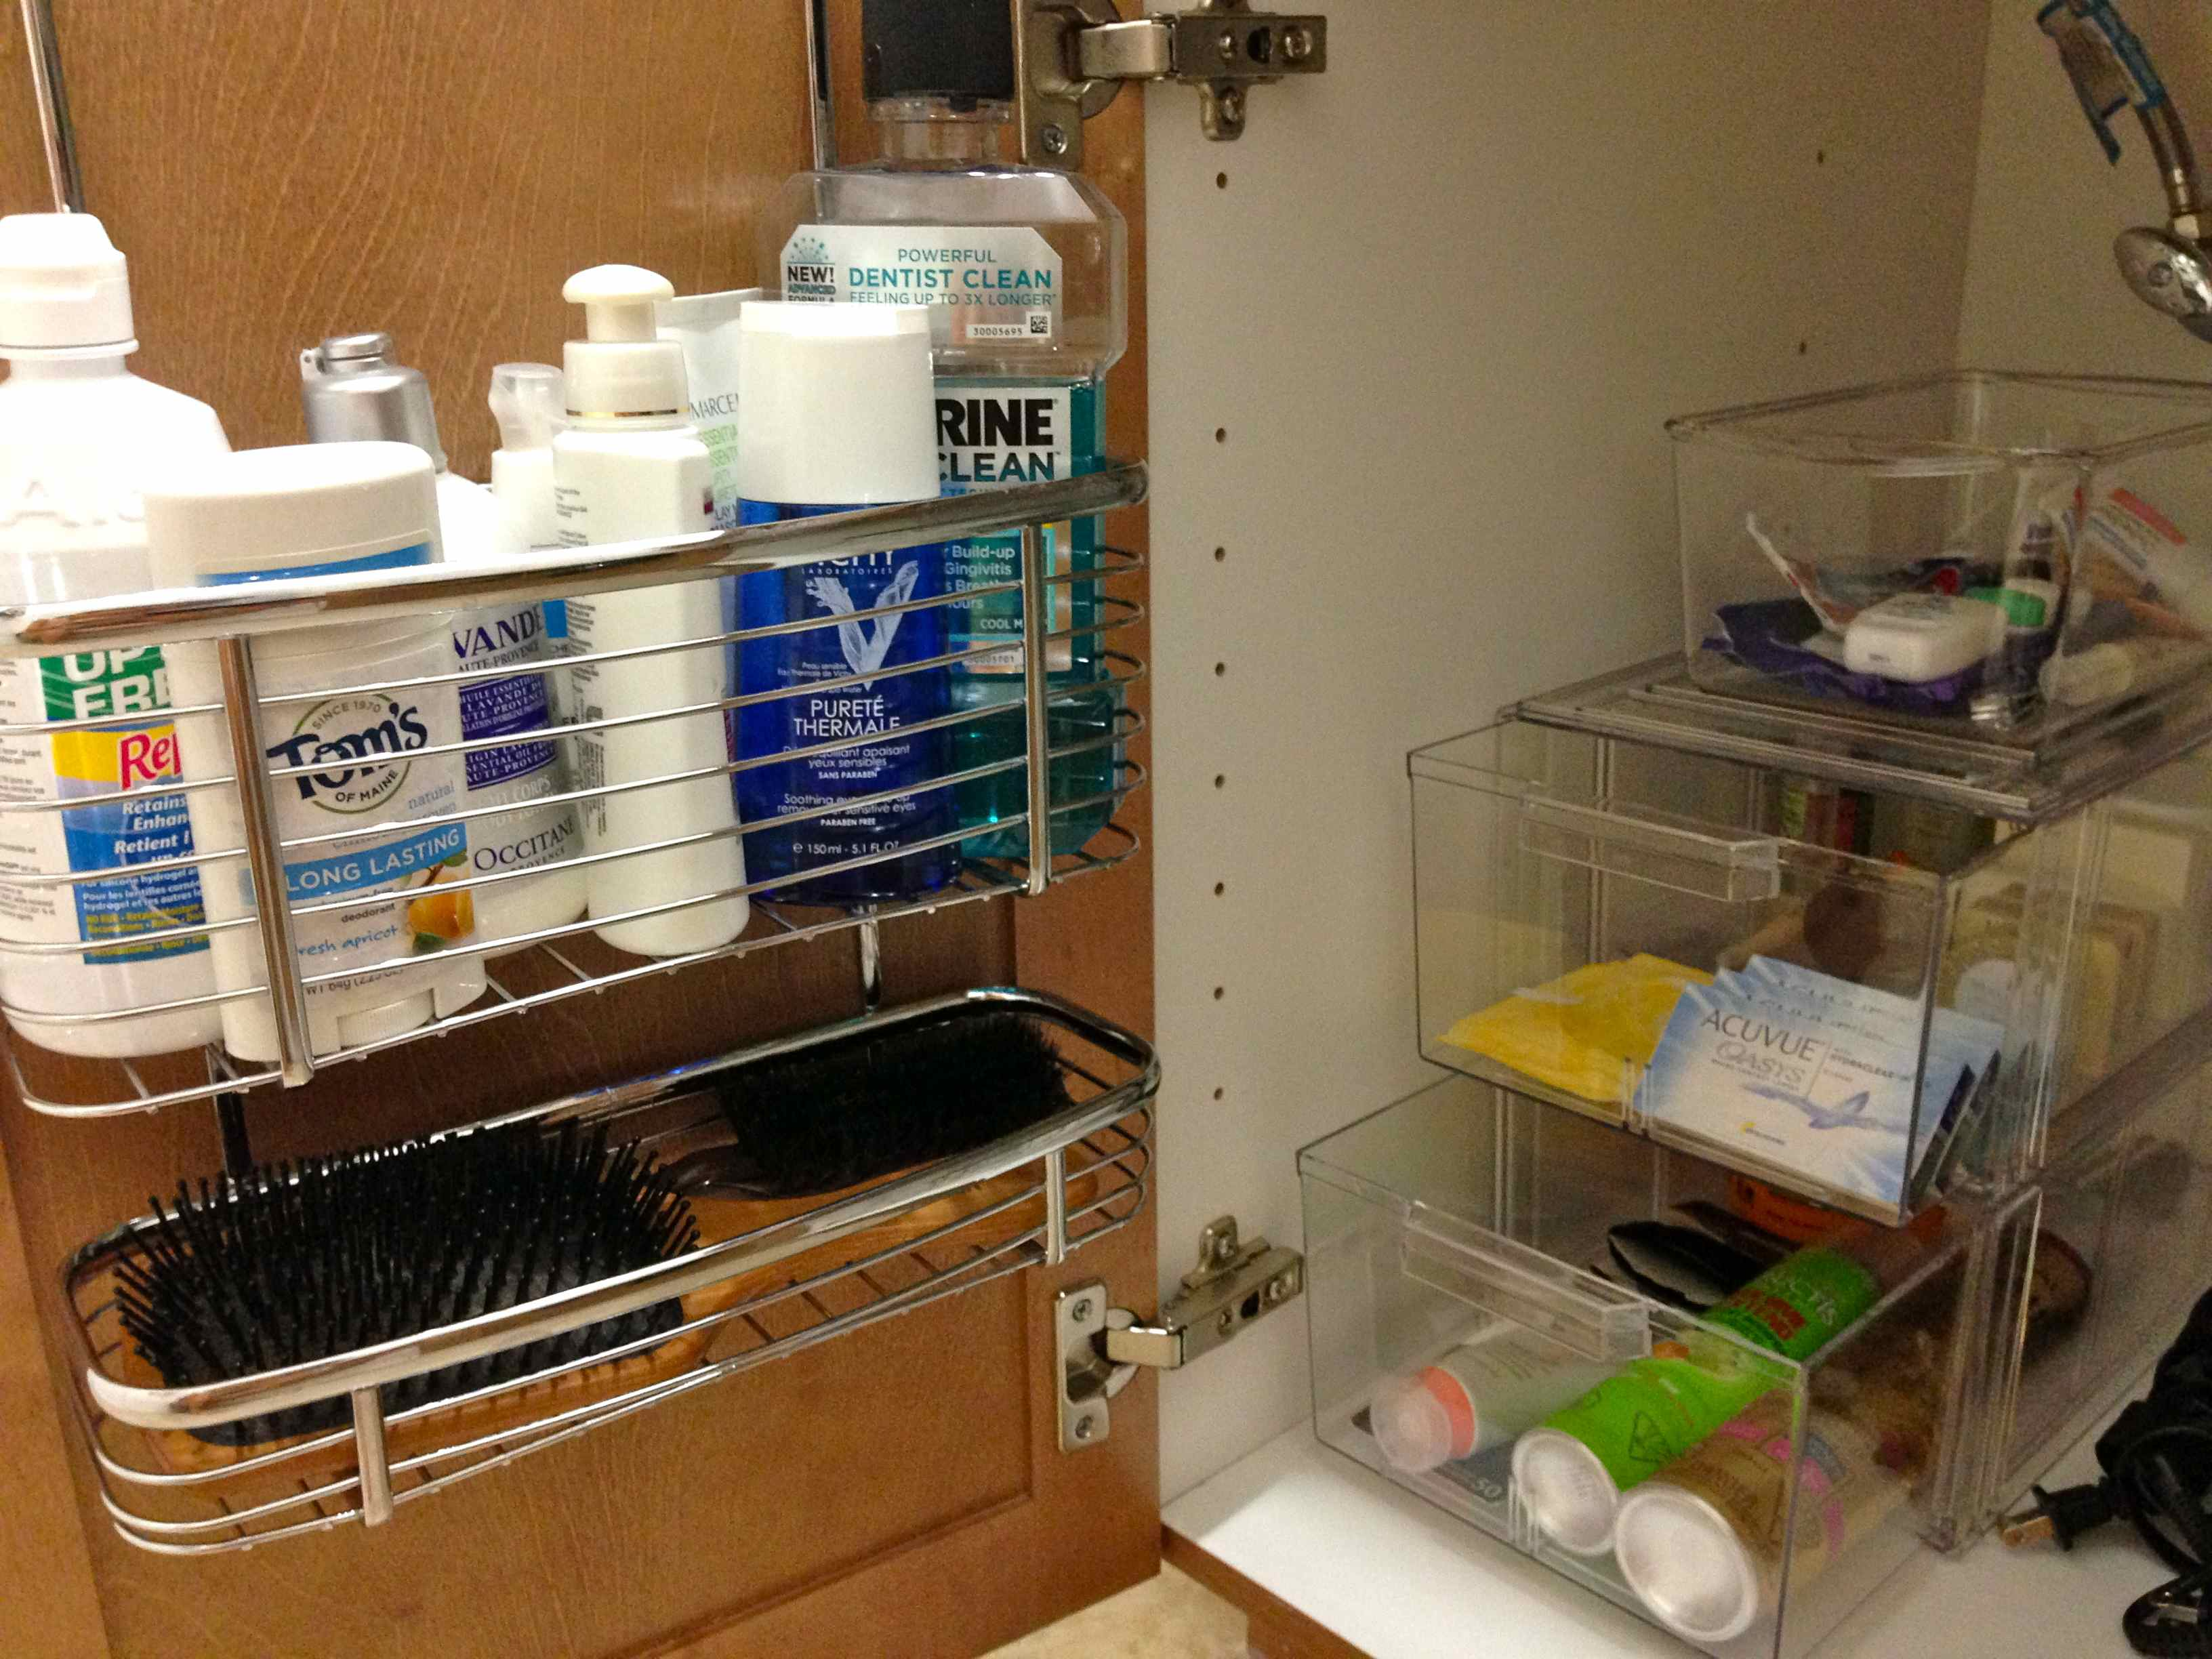 Under the bathroom sink organizer